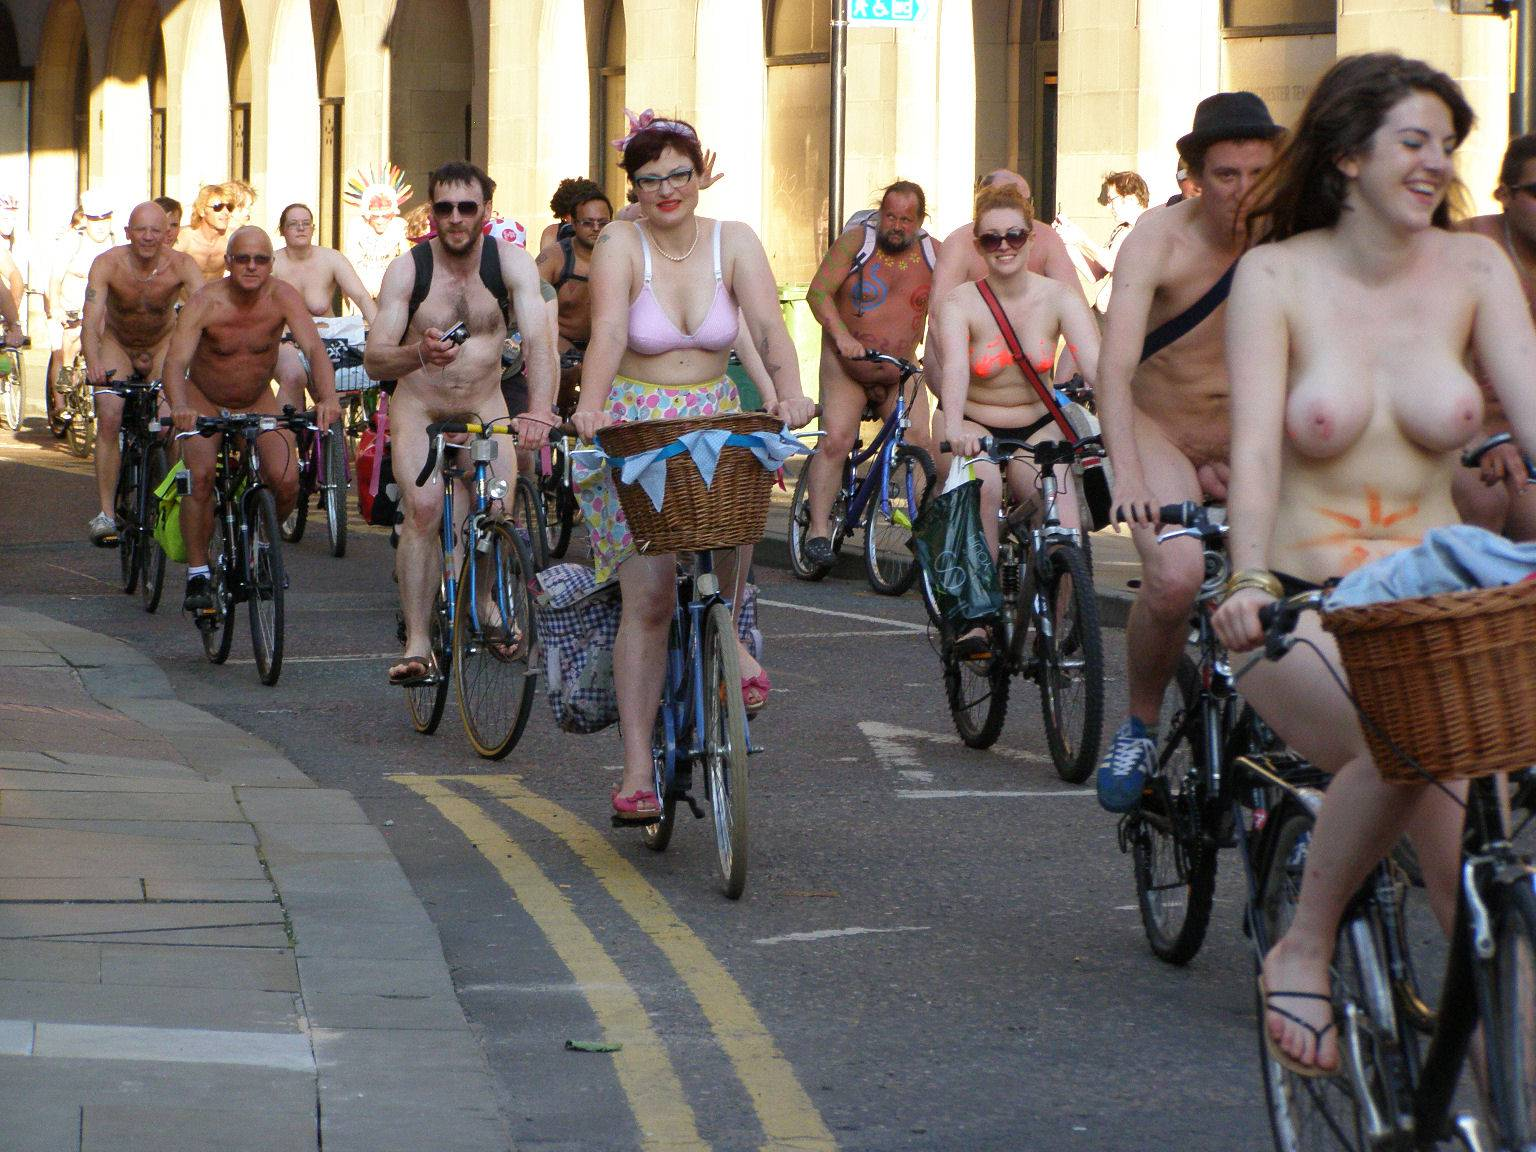 Nudist Pics World Naked Bike Ride (WNBR) 2011 - 1